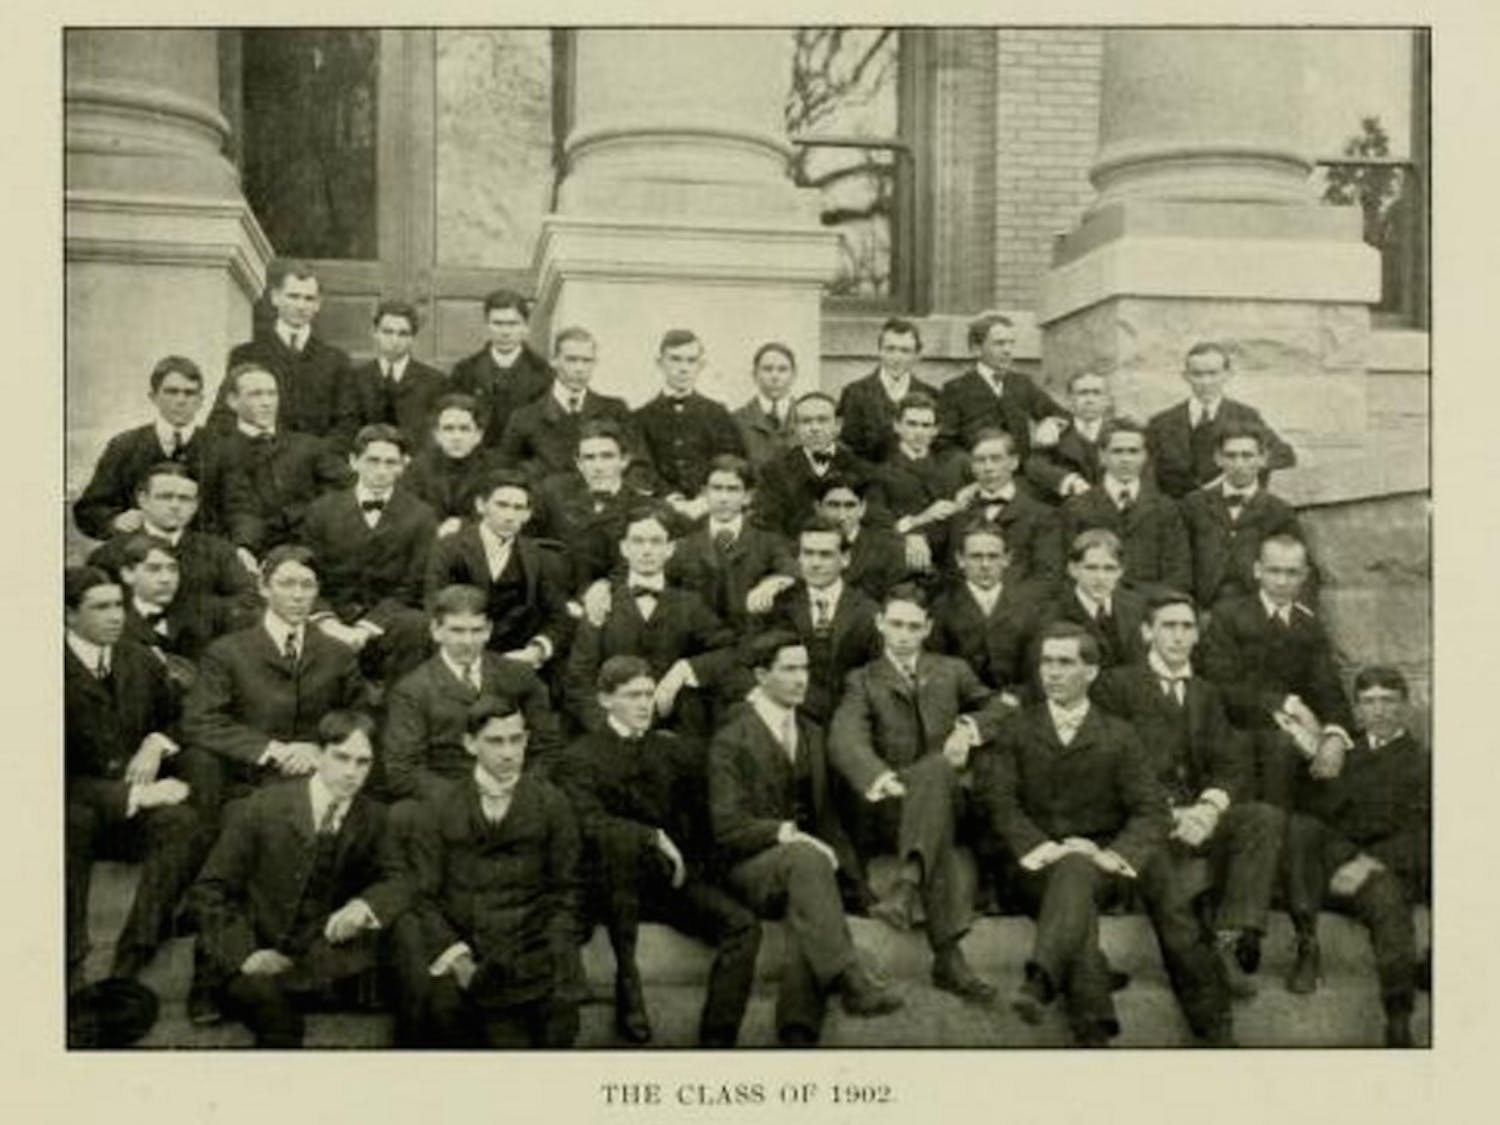 The Yackety Yack included photos to show the class of 1902. Women could enroll starting in 1897, but there are no women shown in this class photo.